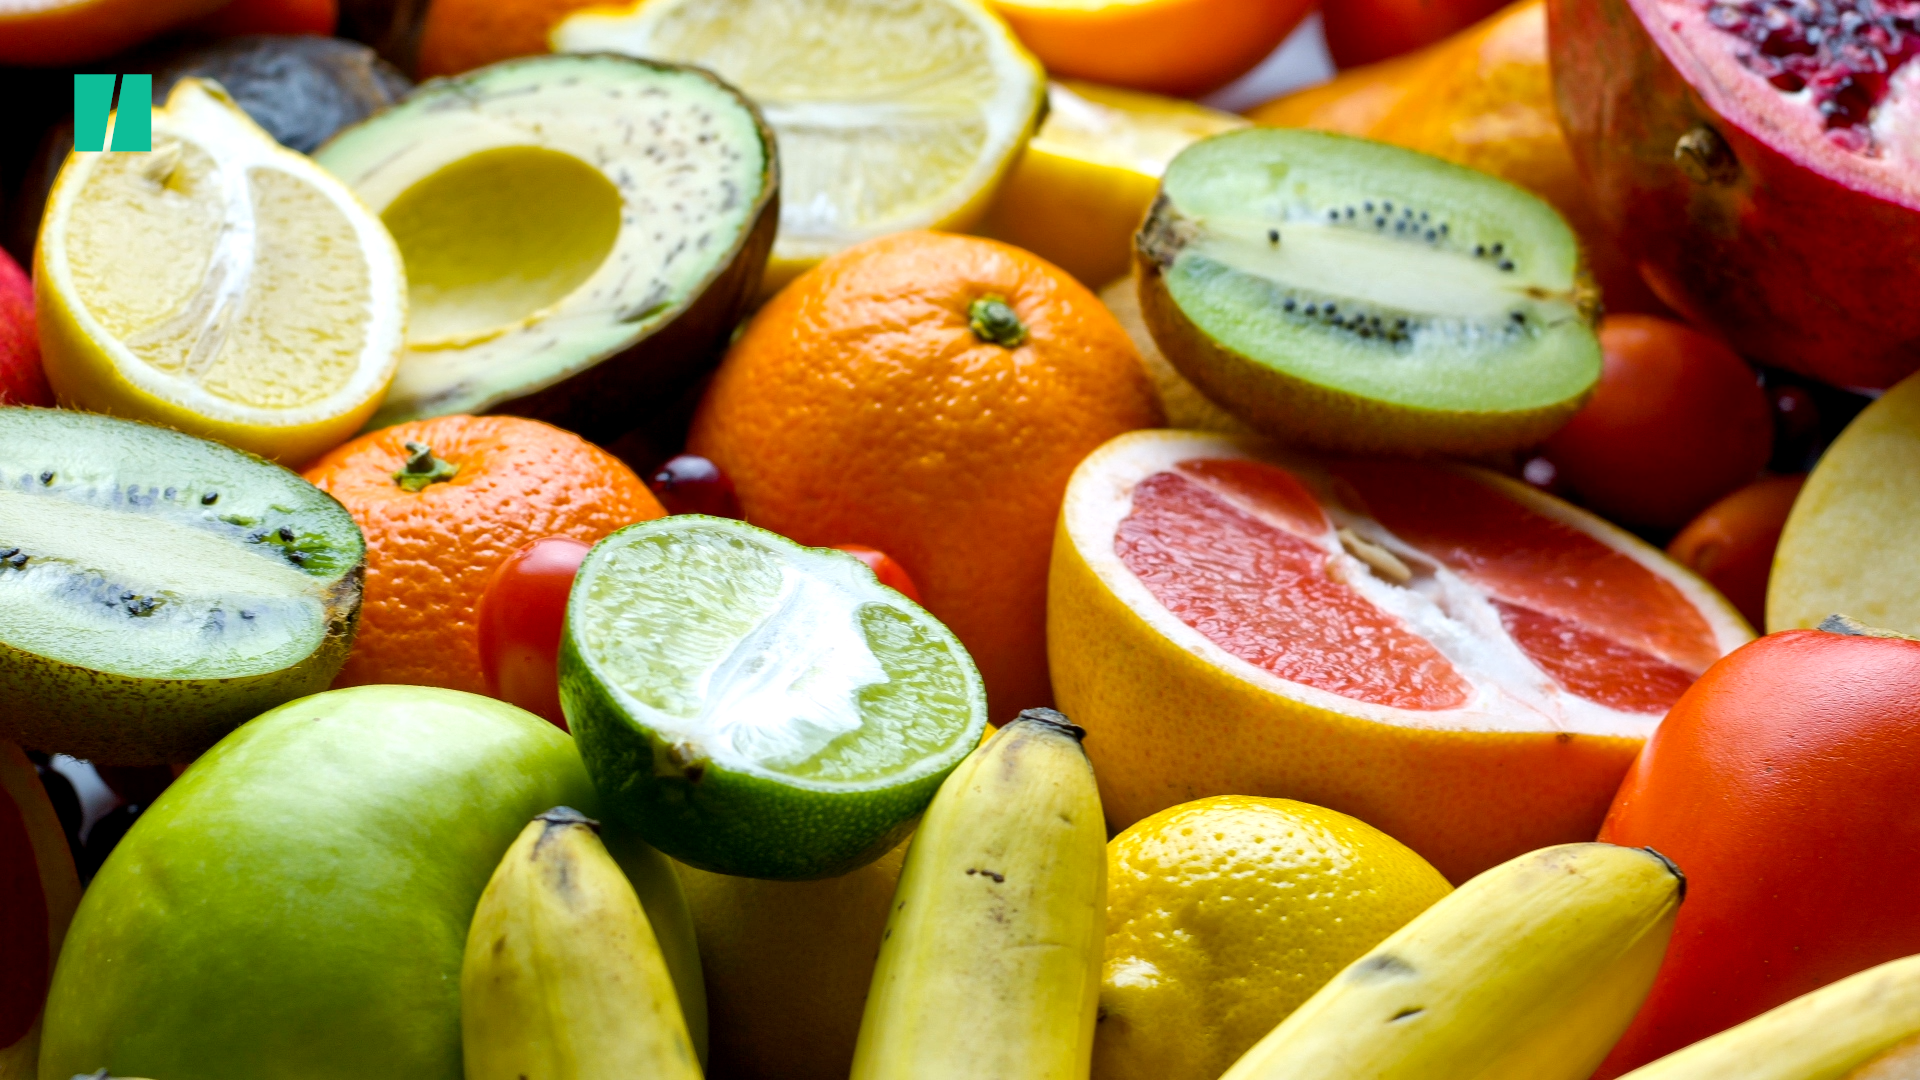 The Fruits And Veggies You Should Eat Daily